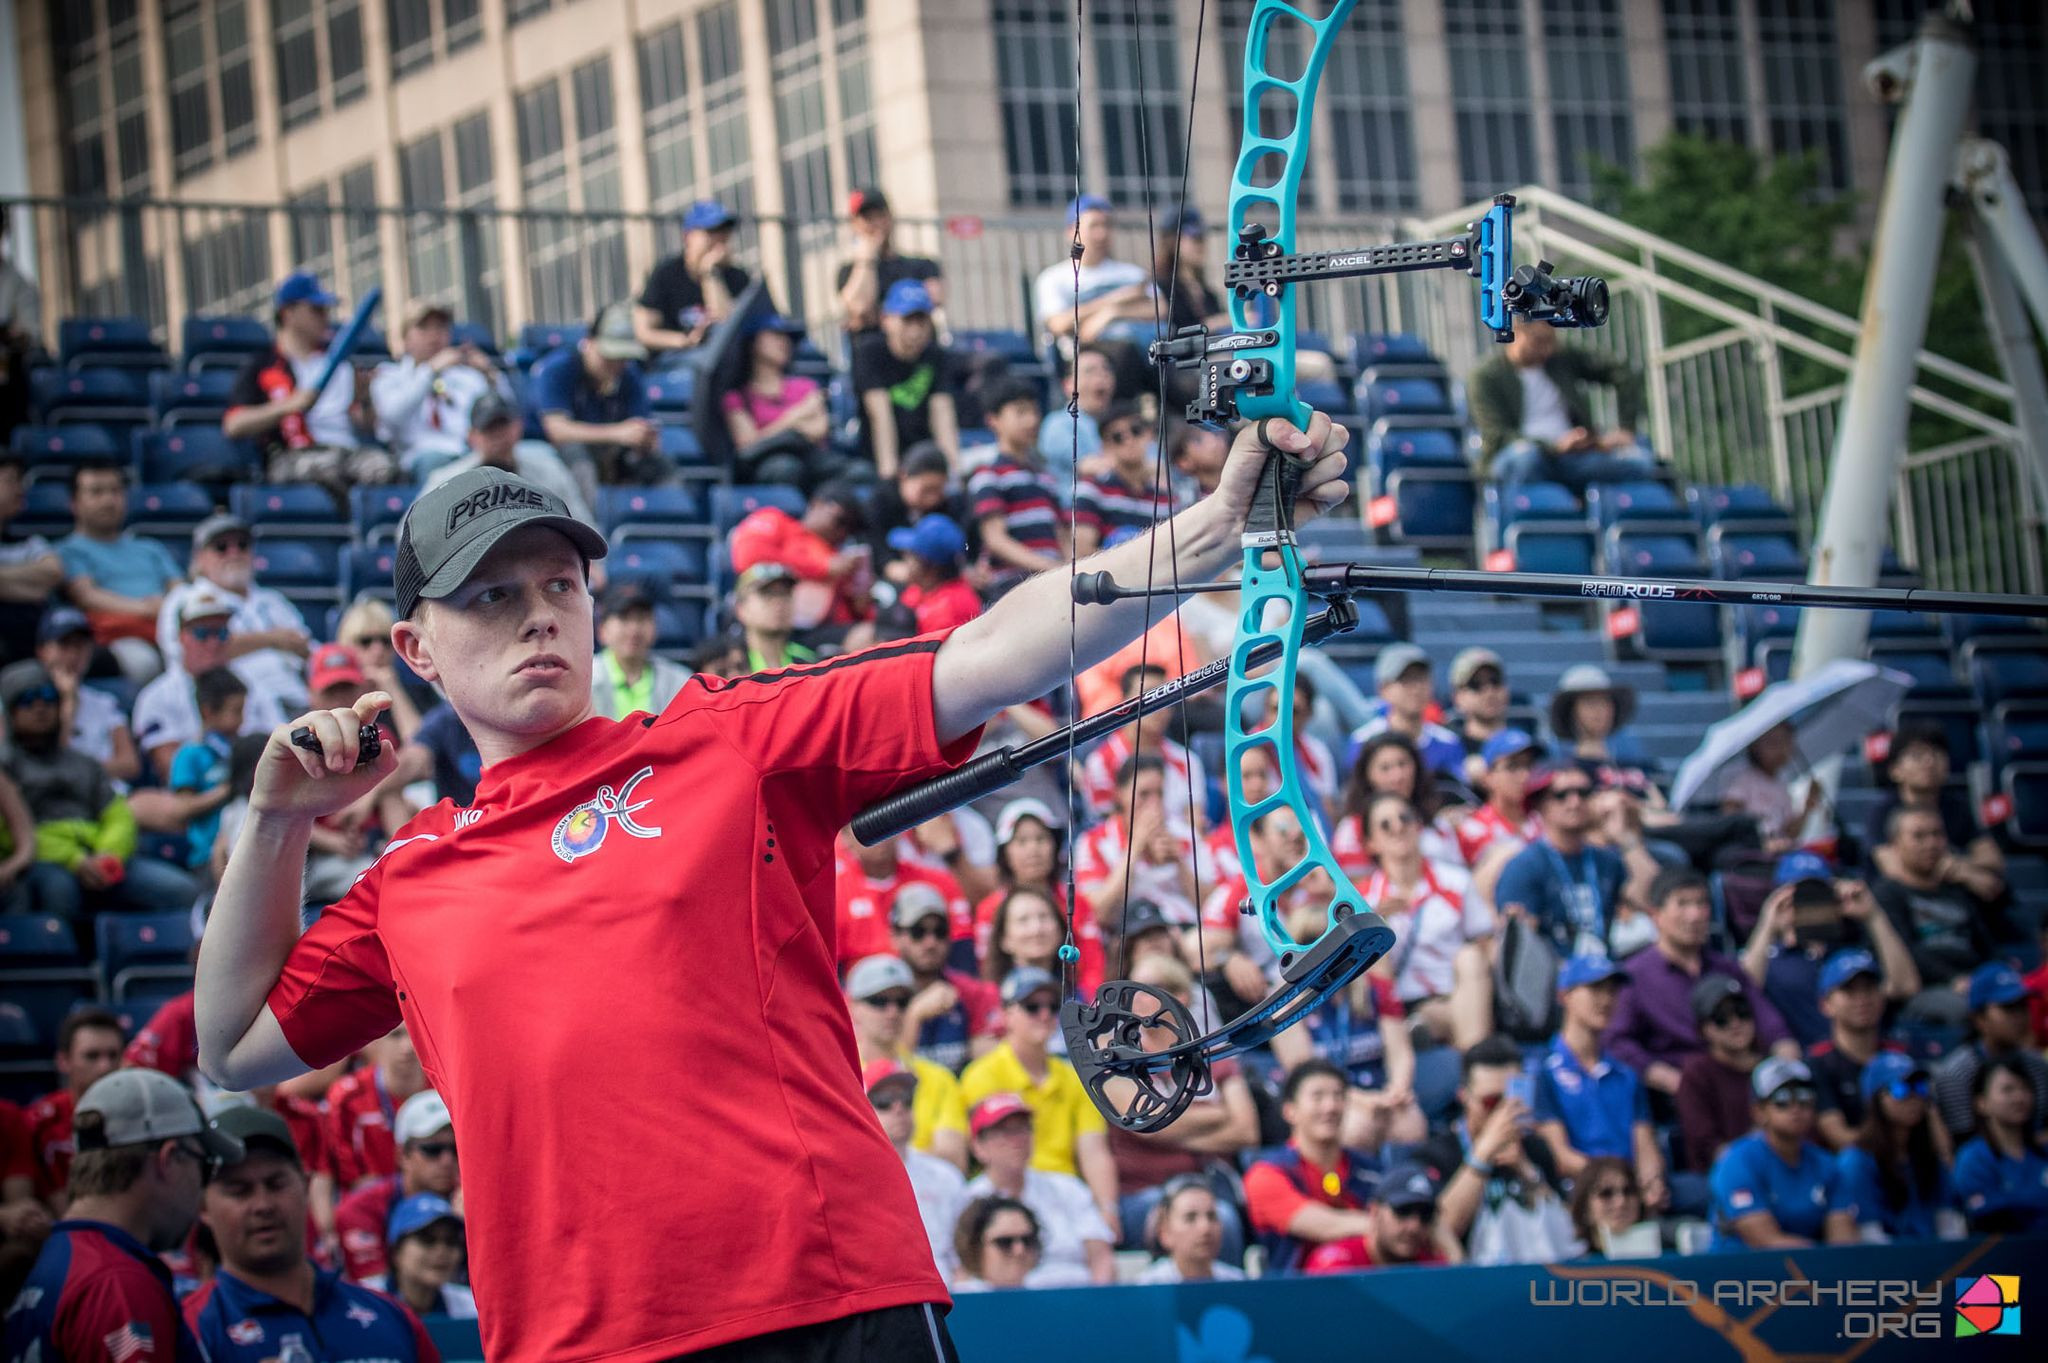 Debutant Frederickx misses gold on final arrow at Archery World Cup in Shanghai